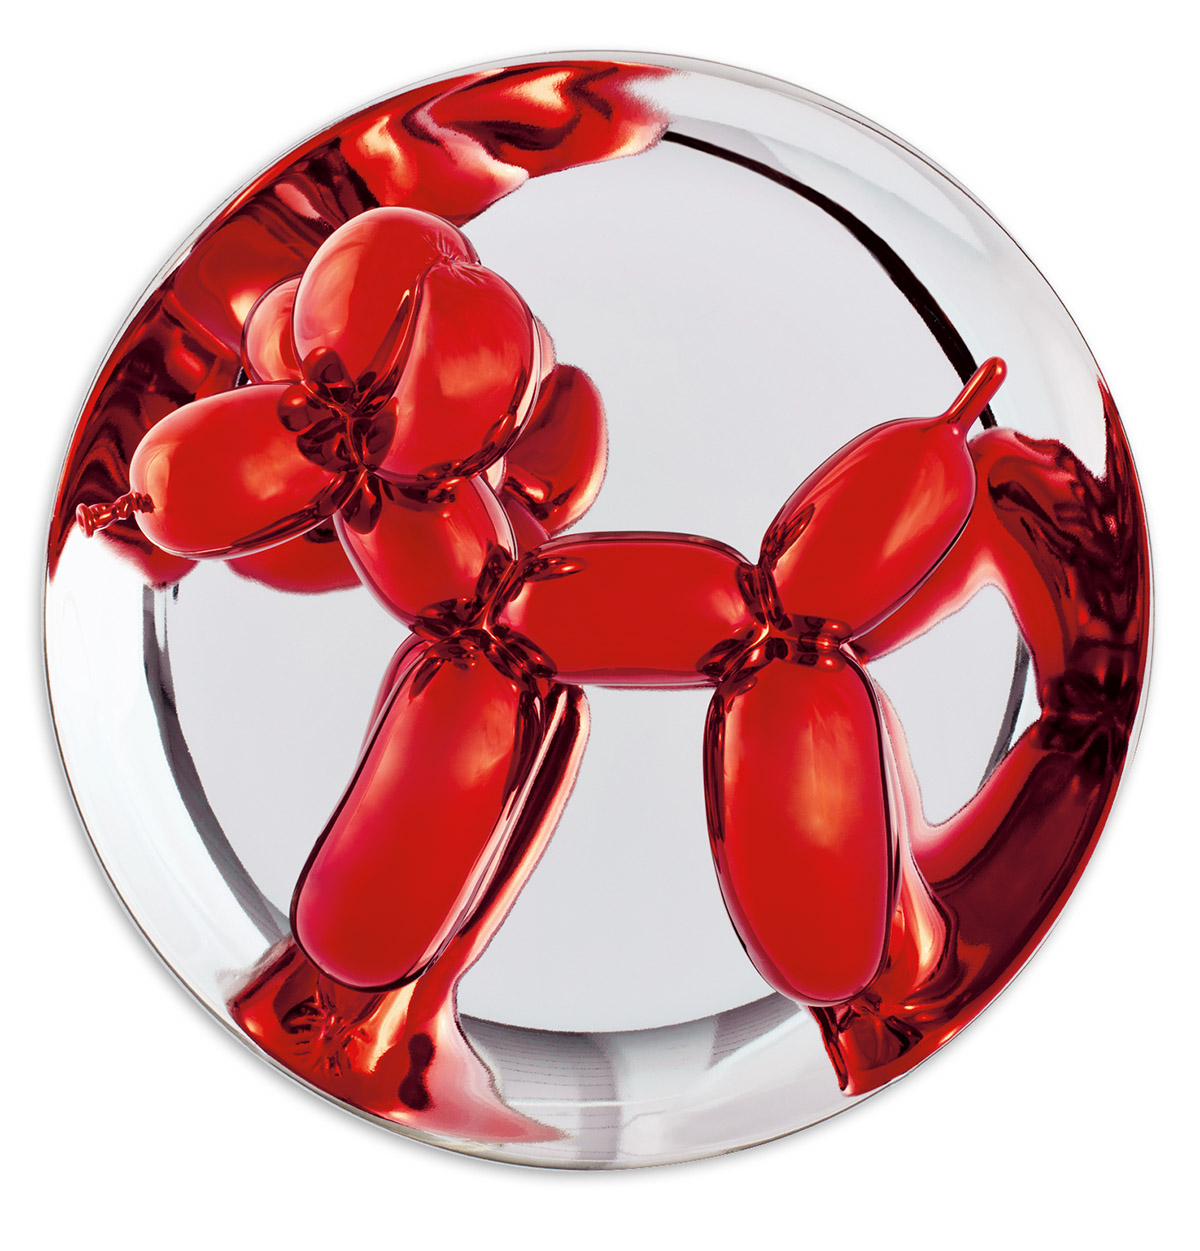 JEFF KOONS Balloon Dog (Red).